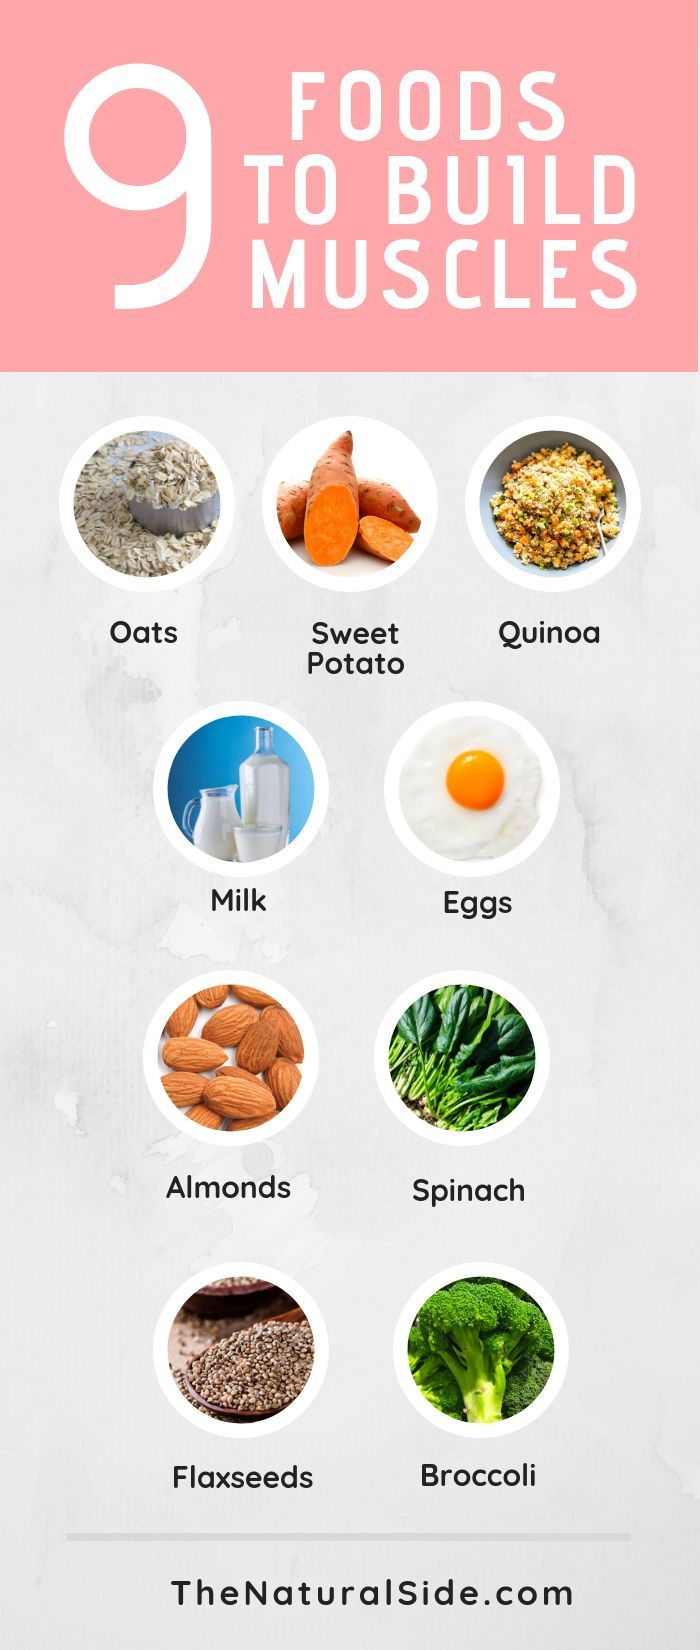 Need help to build muscles? See these 9 muscle building foods that build lean mu…